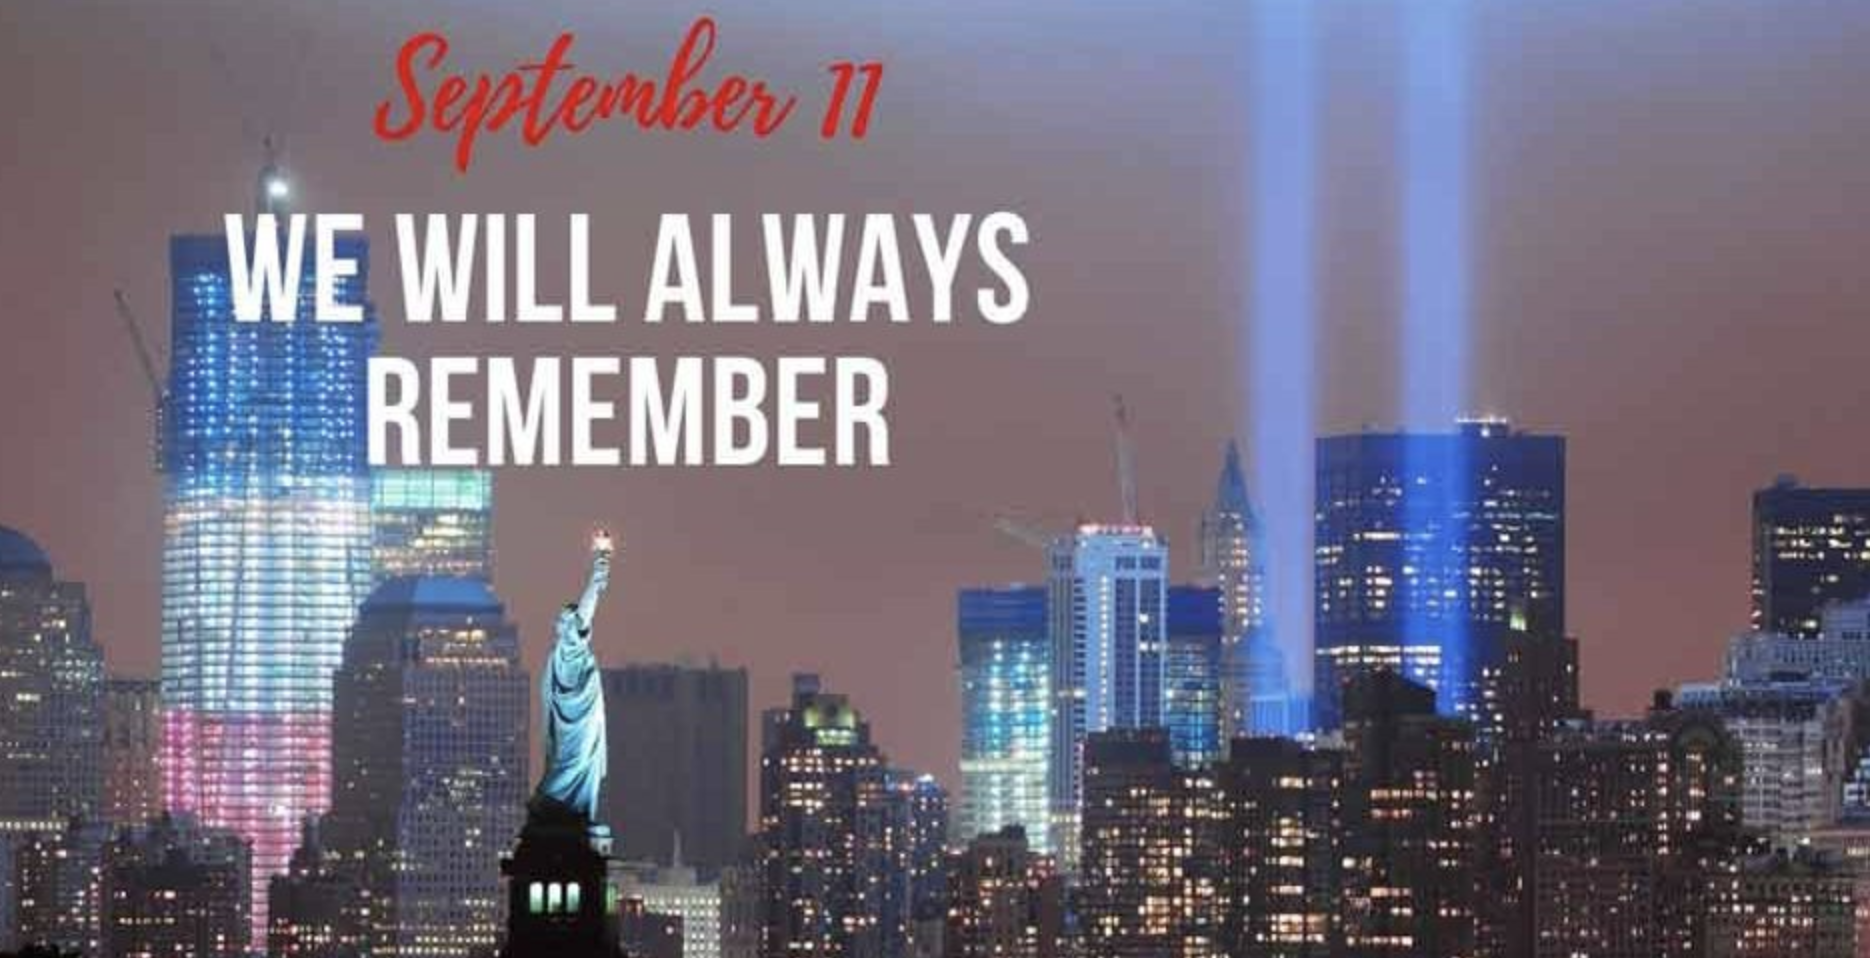 Remember 9/11 and how Ilhan Omar disrespected the memories of those who died